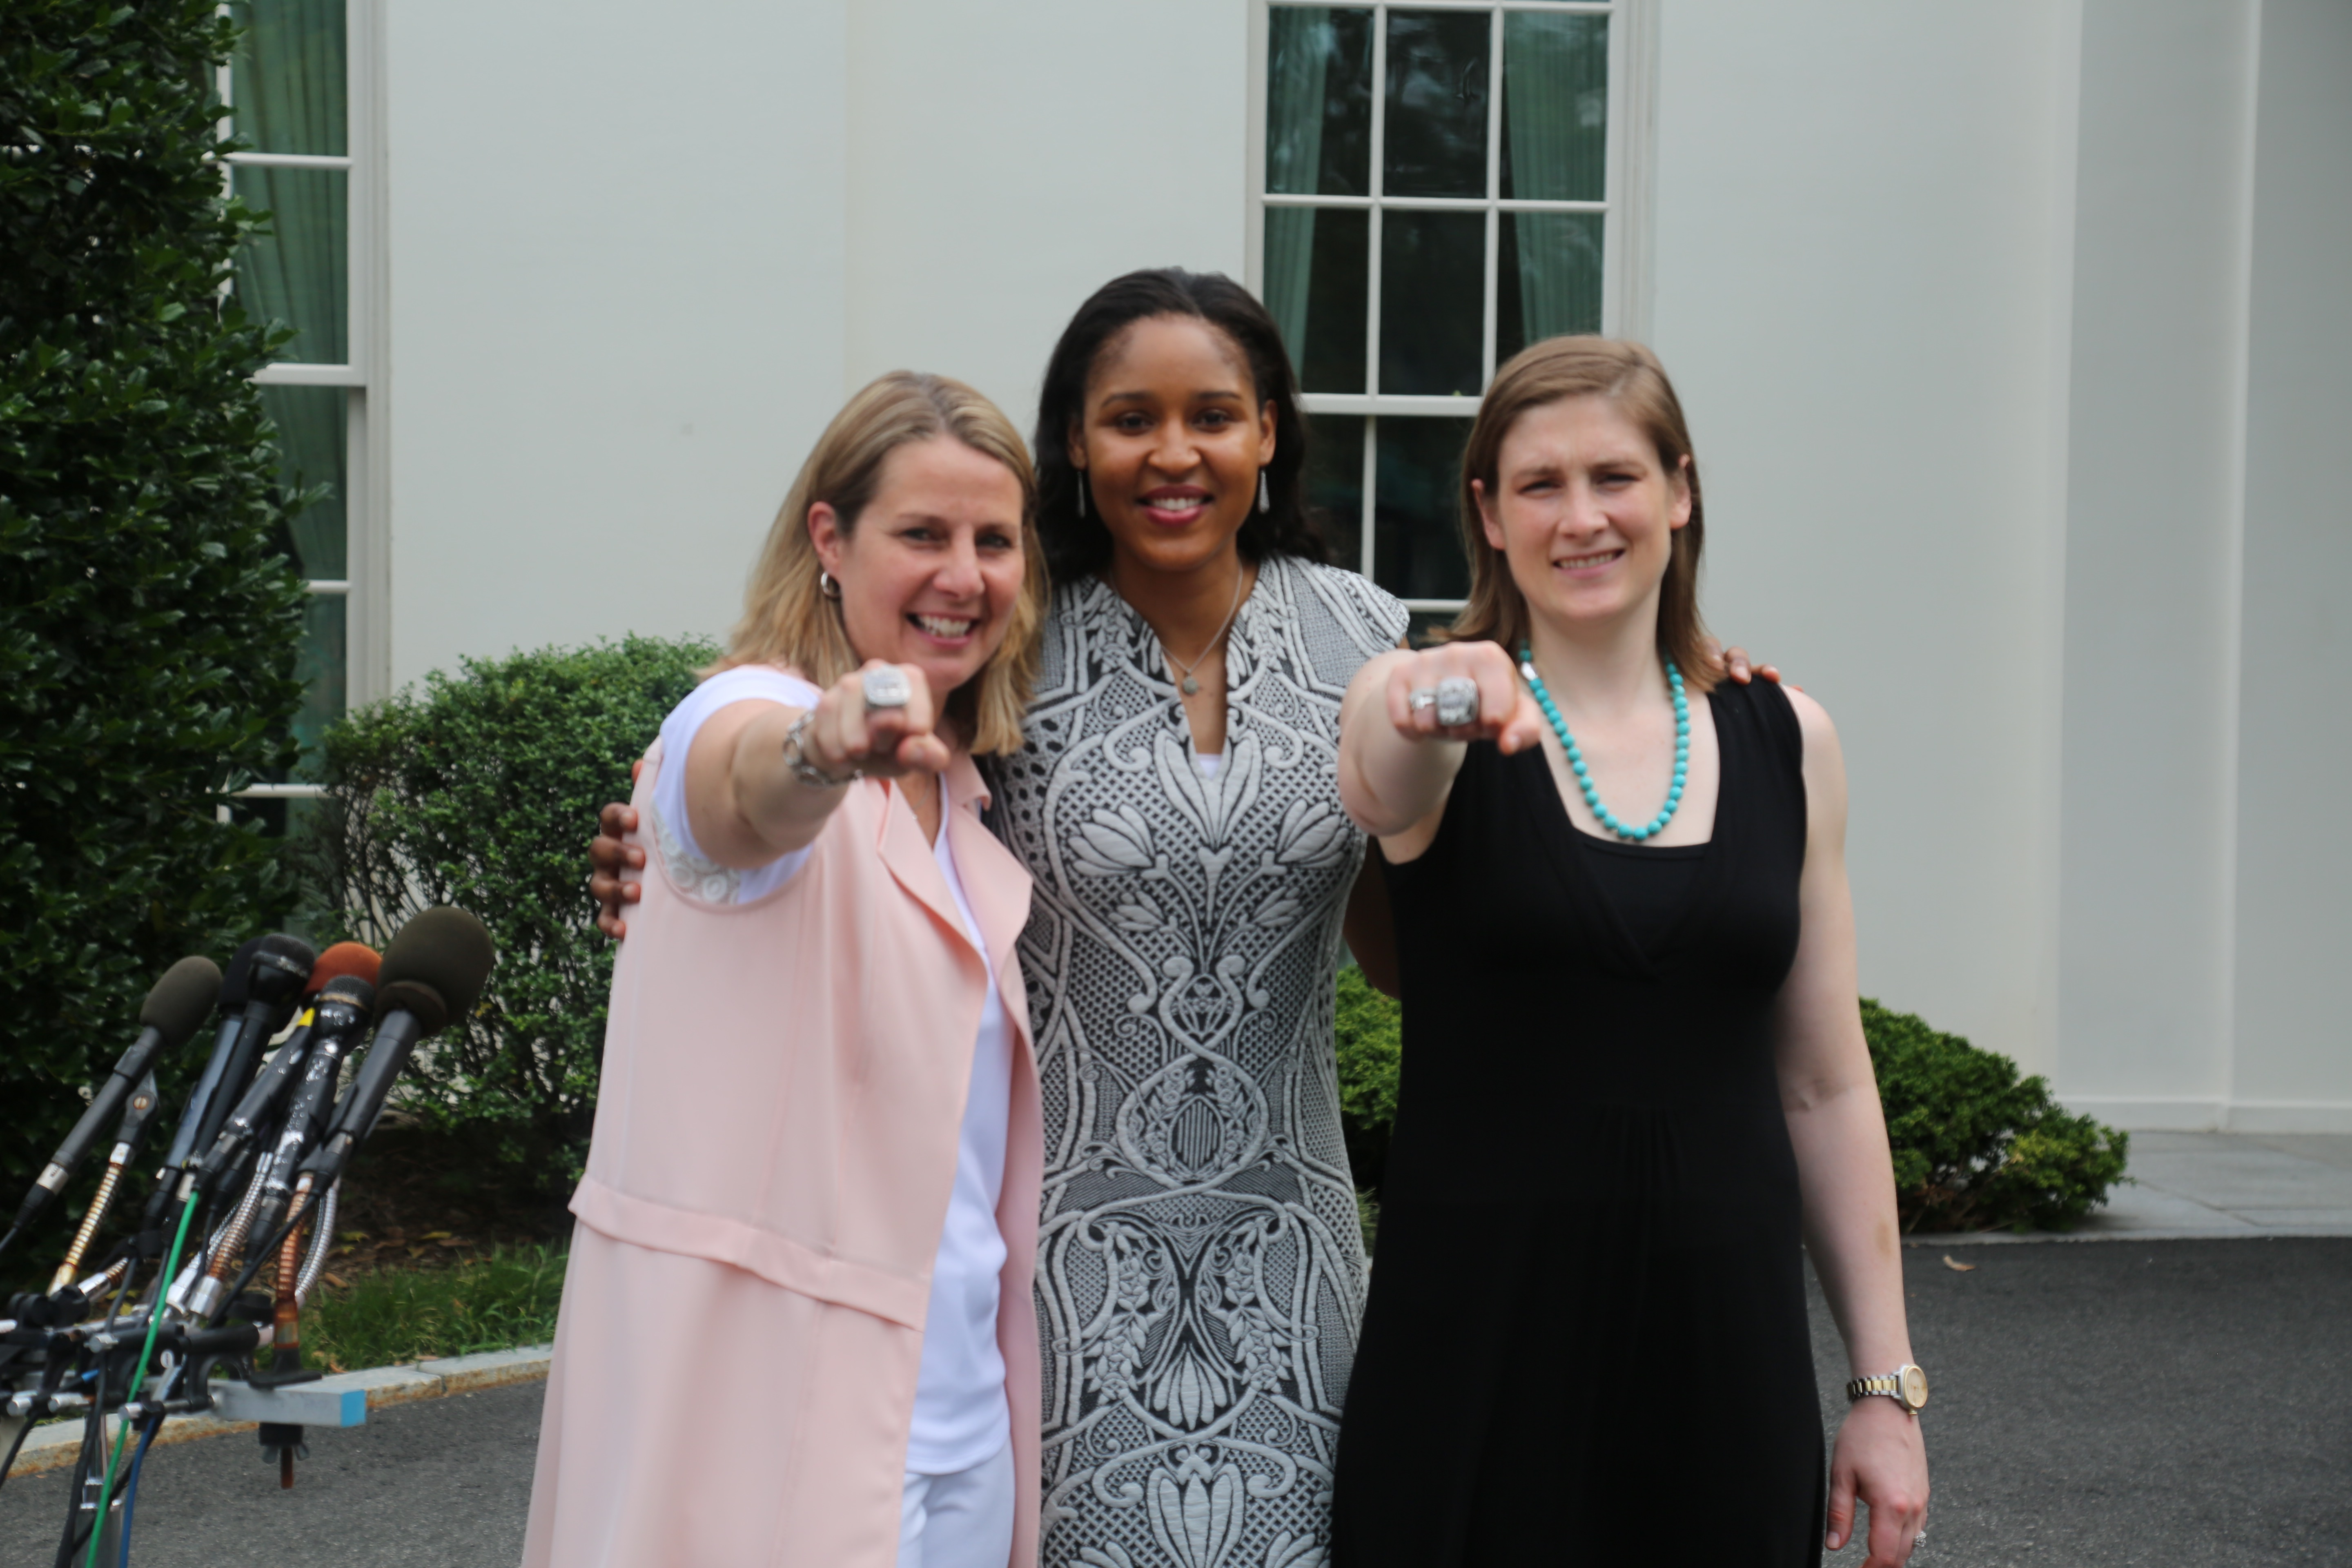 Minnesota Lynx Coach Cheryl Reeves, forward Maya Moore and guard Lindsay Whalen show off their 2015 WNBA championship rings.